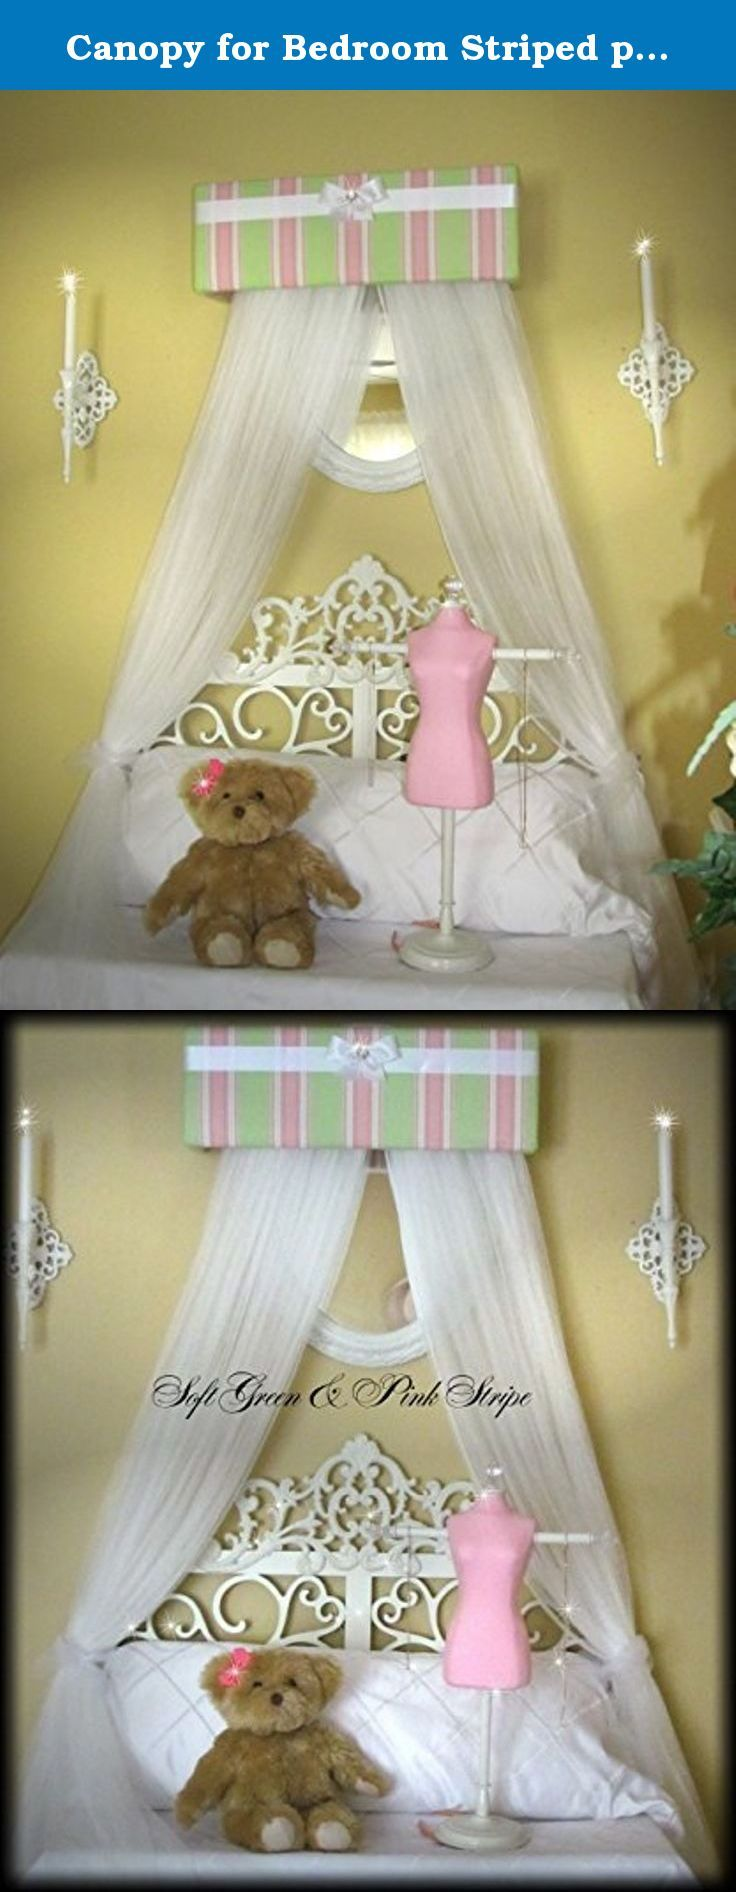 Crib for sale davao - Canopy For Bedroom Striped Pink Greens White Curtains Sale Nursery Bed Crib So Zoey Boutique